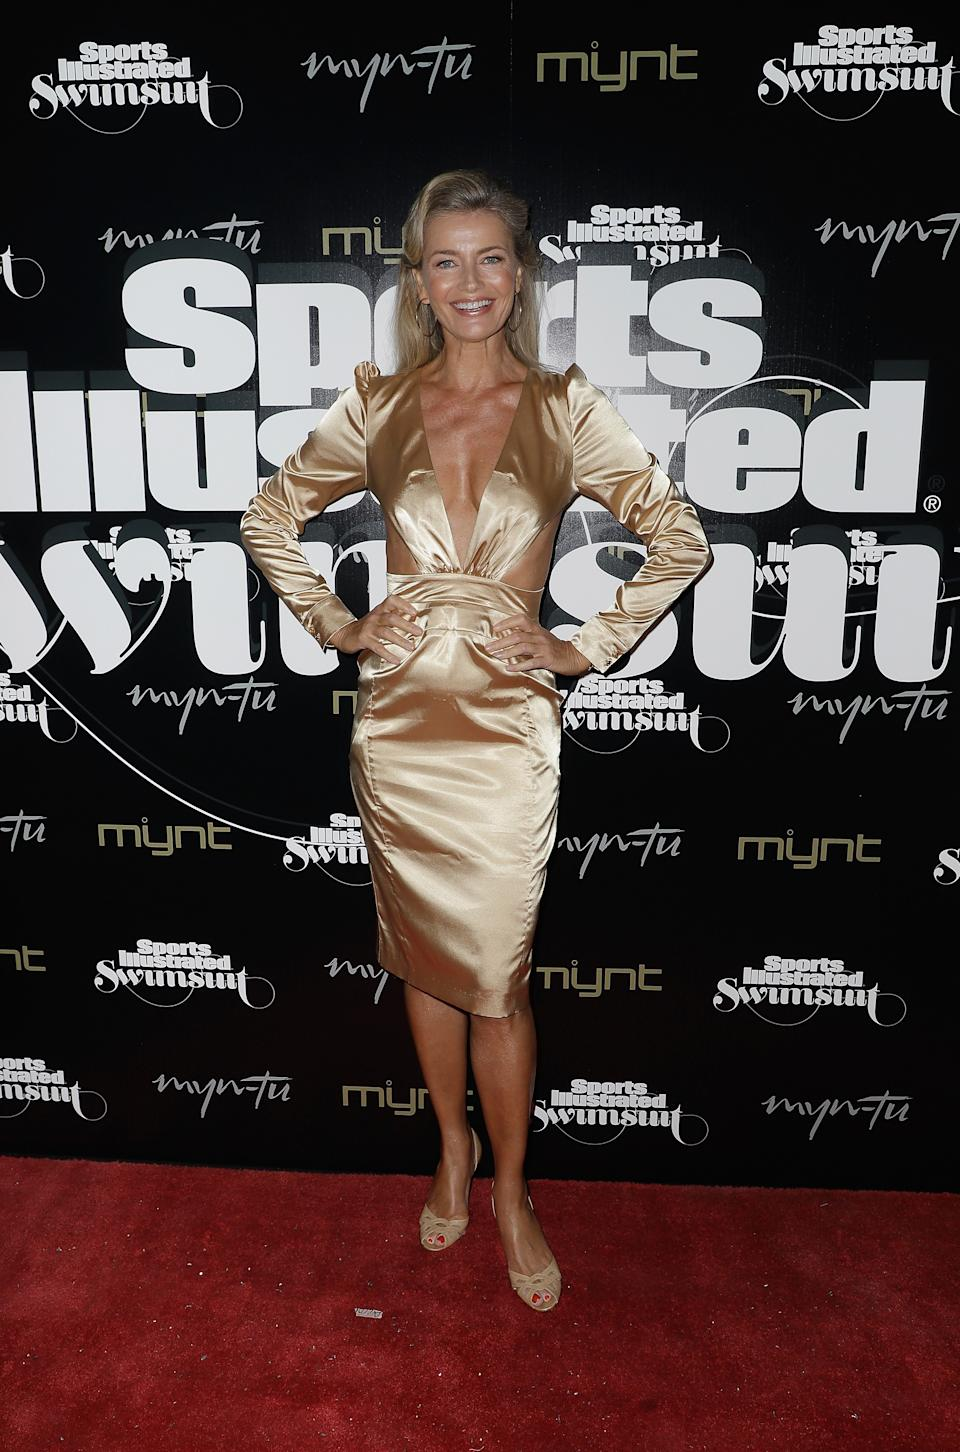 MIAMI, FL - MAY 11:  Paulina Porizkova attends the Sports Illustrated Swimsuit Celebrates 2019 Issue Launch at Myn-Tu on May 11, 2019 in Miami, Florida.  (Photo by John Parra/Getty Images for Sports Illustrated)